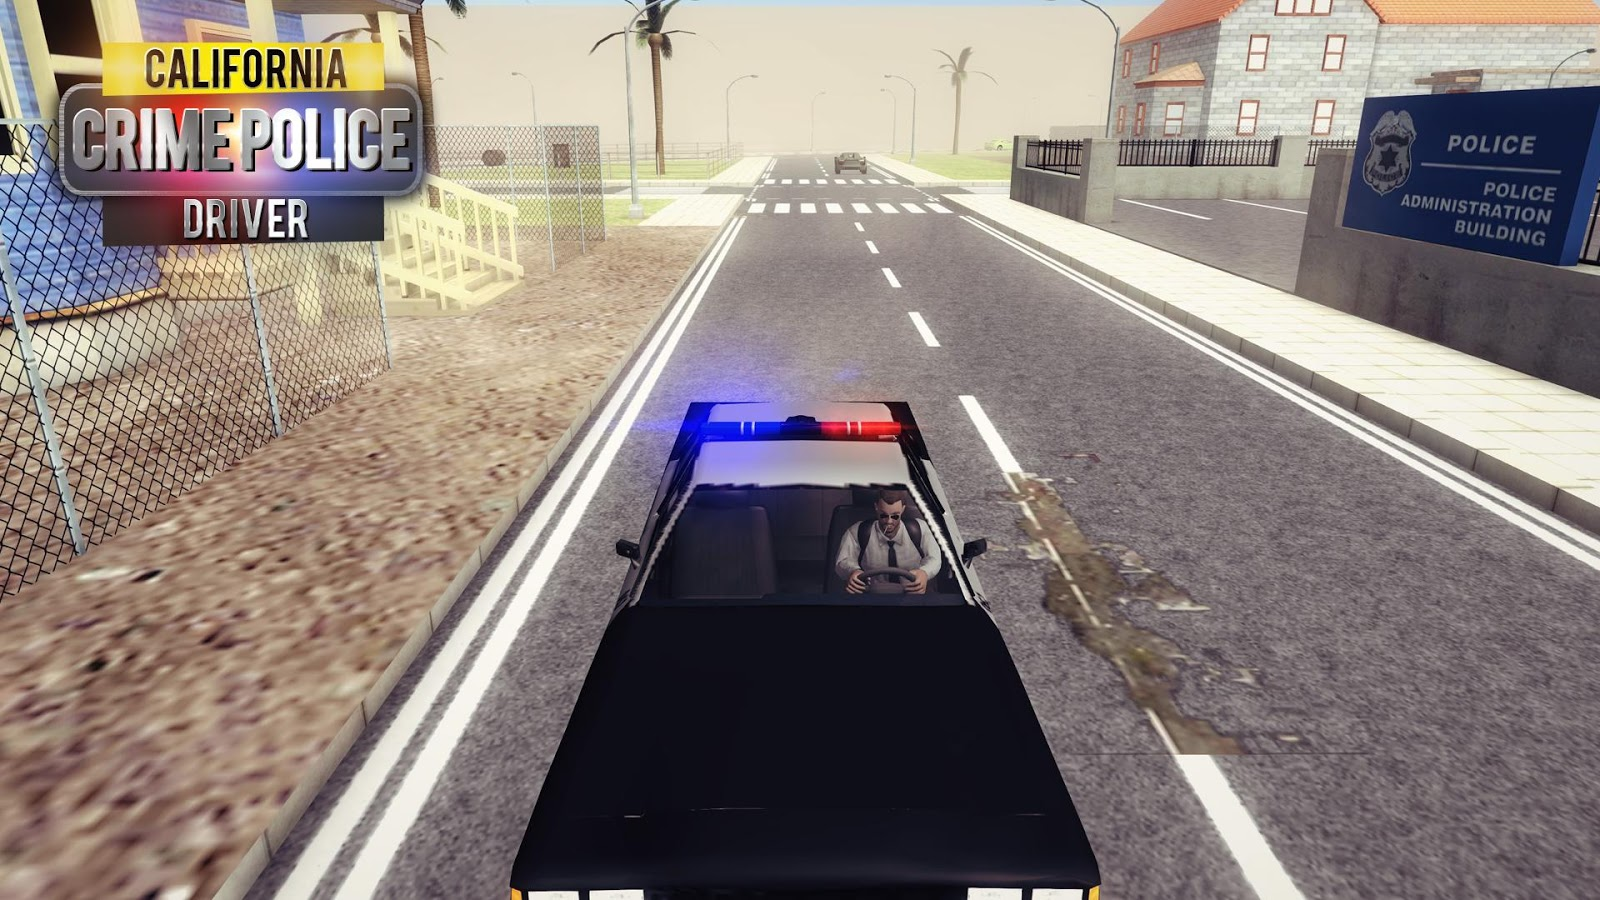 California Crime Police Driver- screenshot